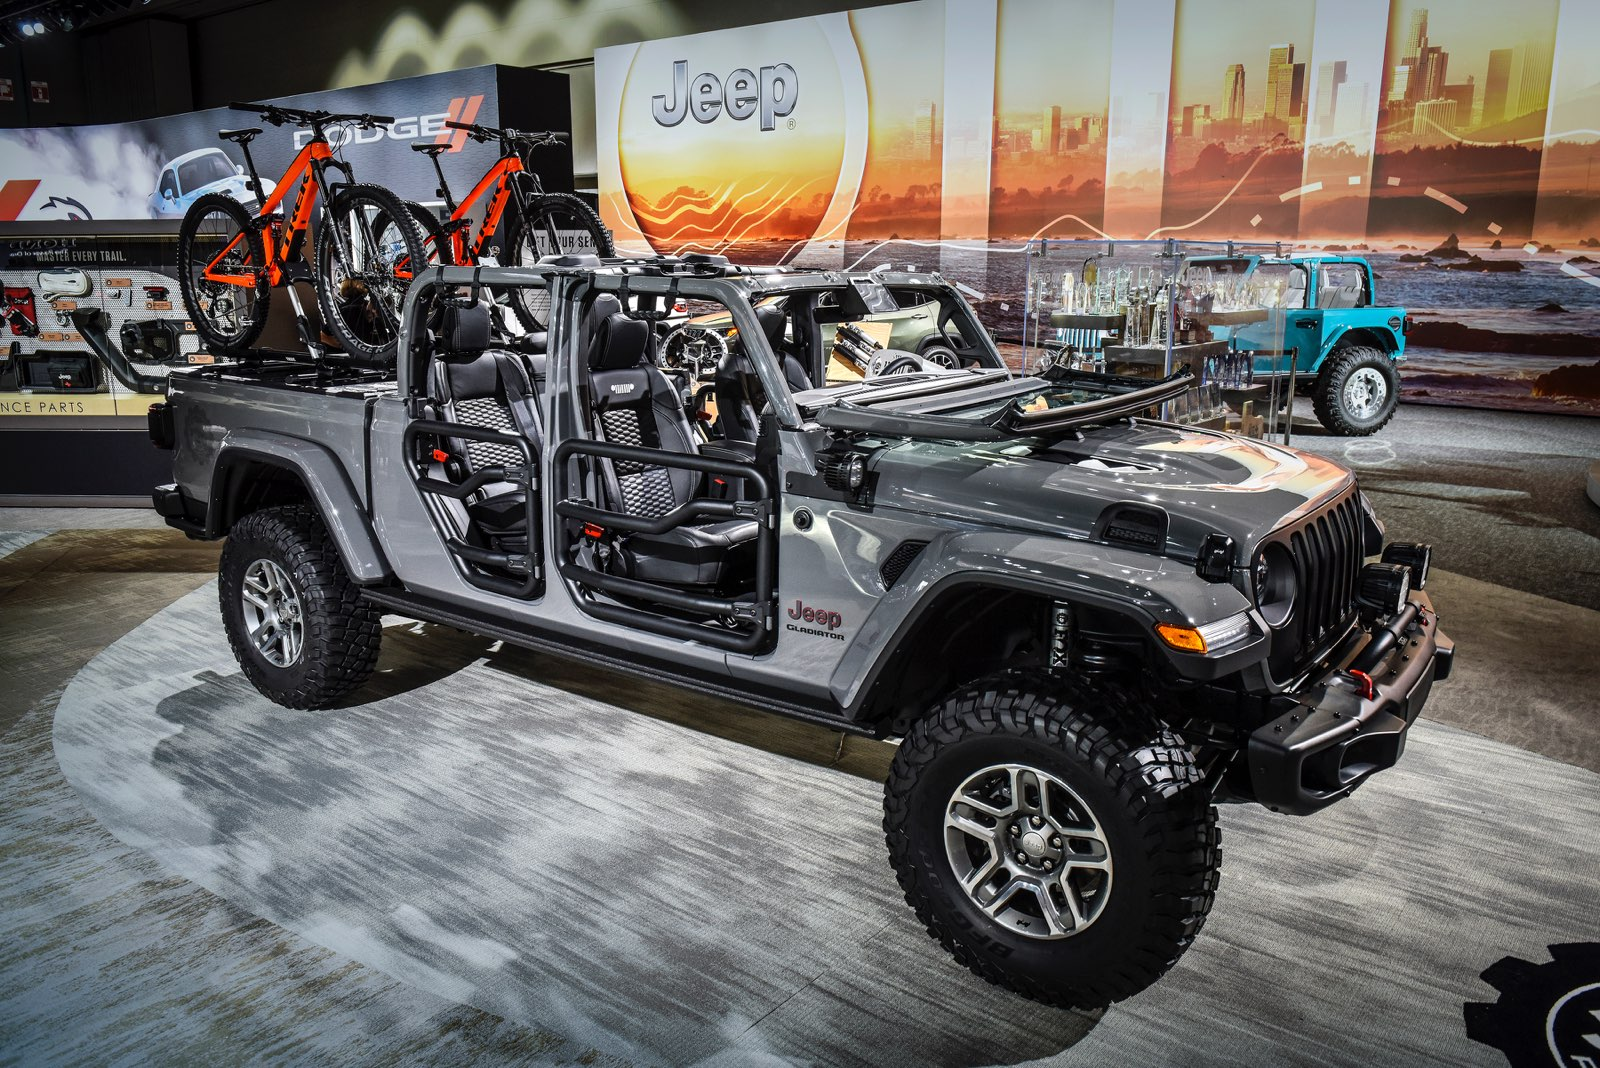 Jeep Wrangler For Sale Ontario >> More Than 200 Mopar Accessories Available for 2020 Jeep Gladiator - The News Wheel